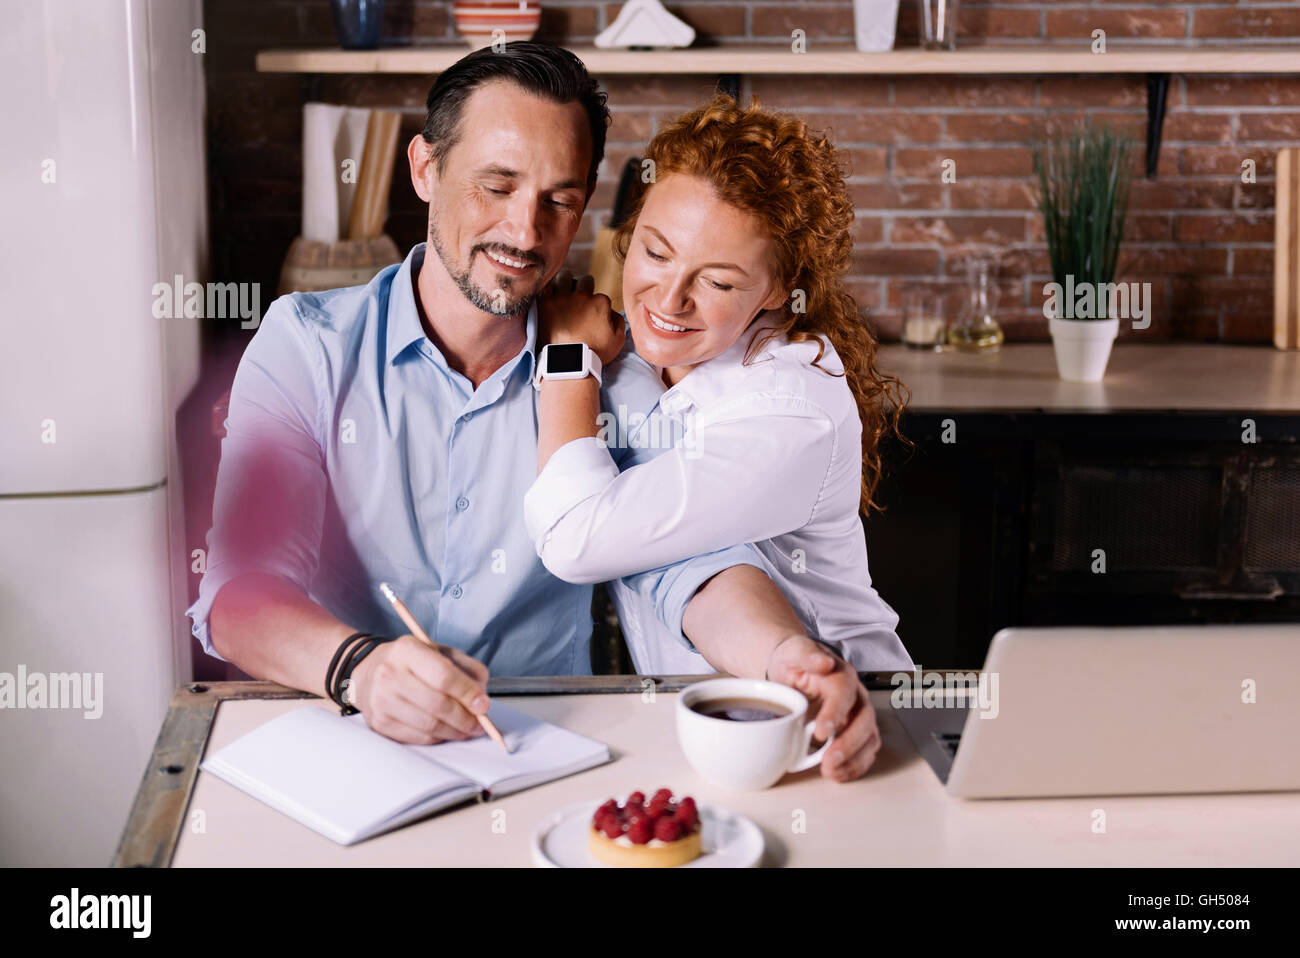 Woman looking how man writing - Stock Image